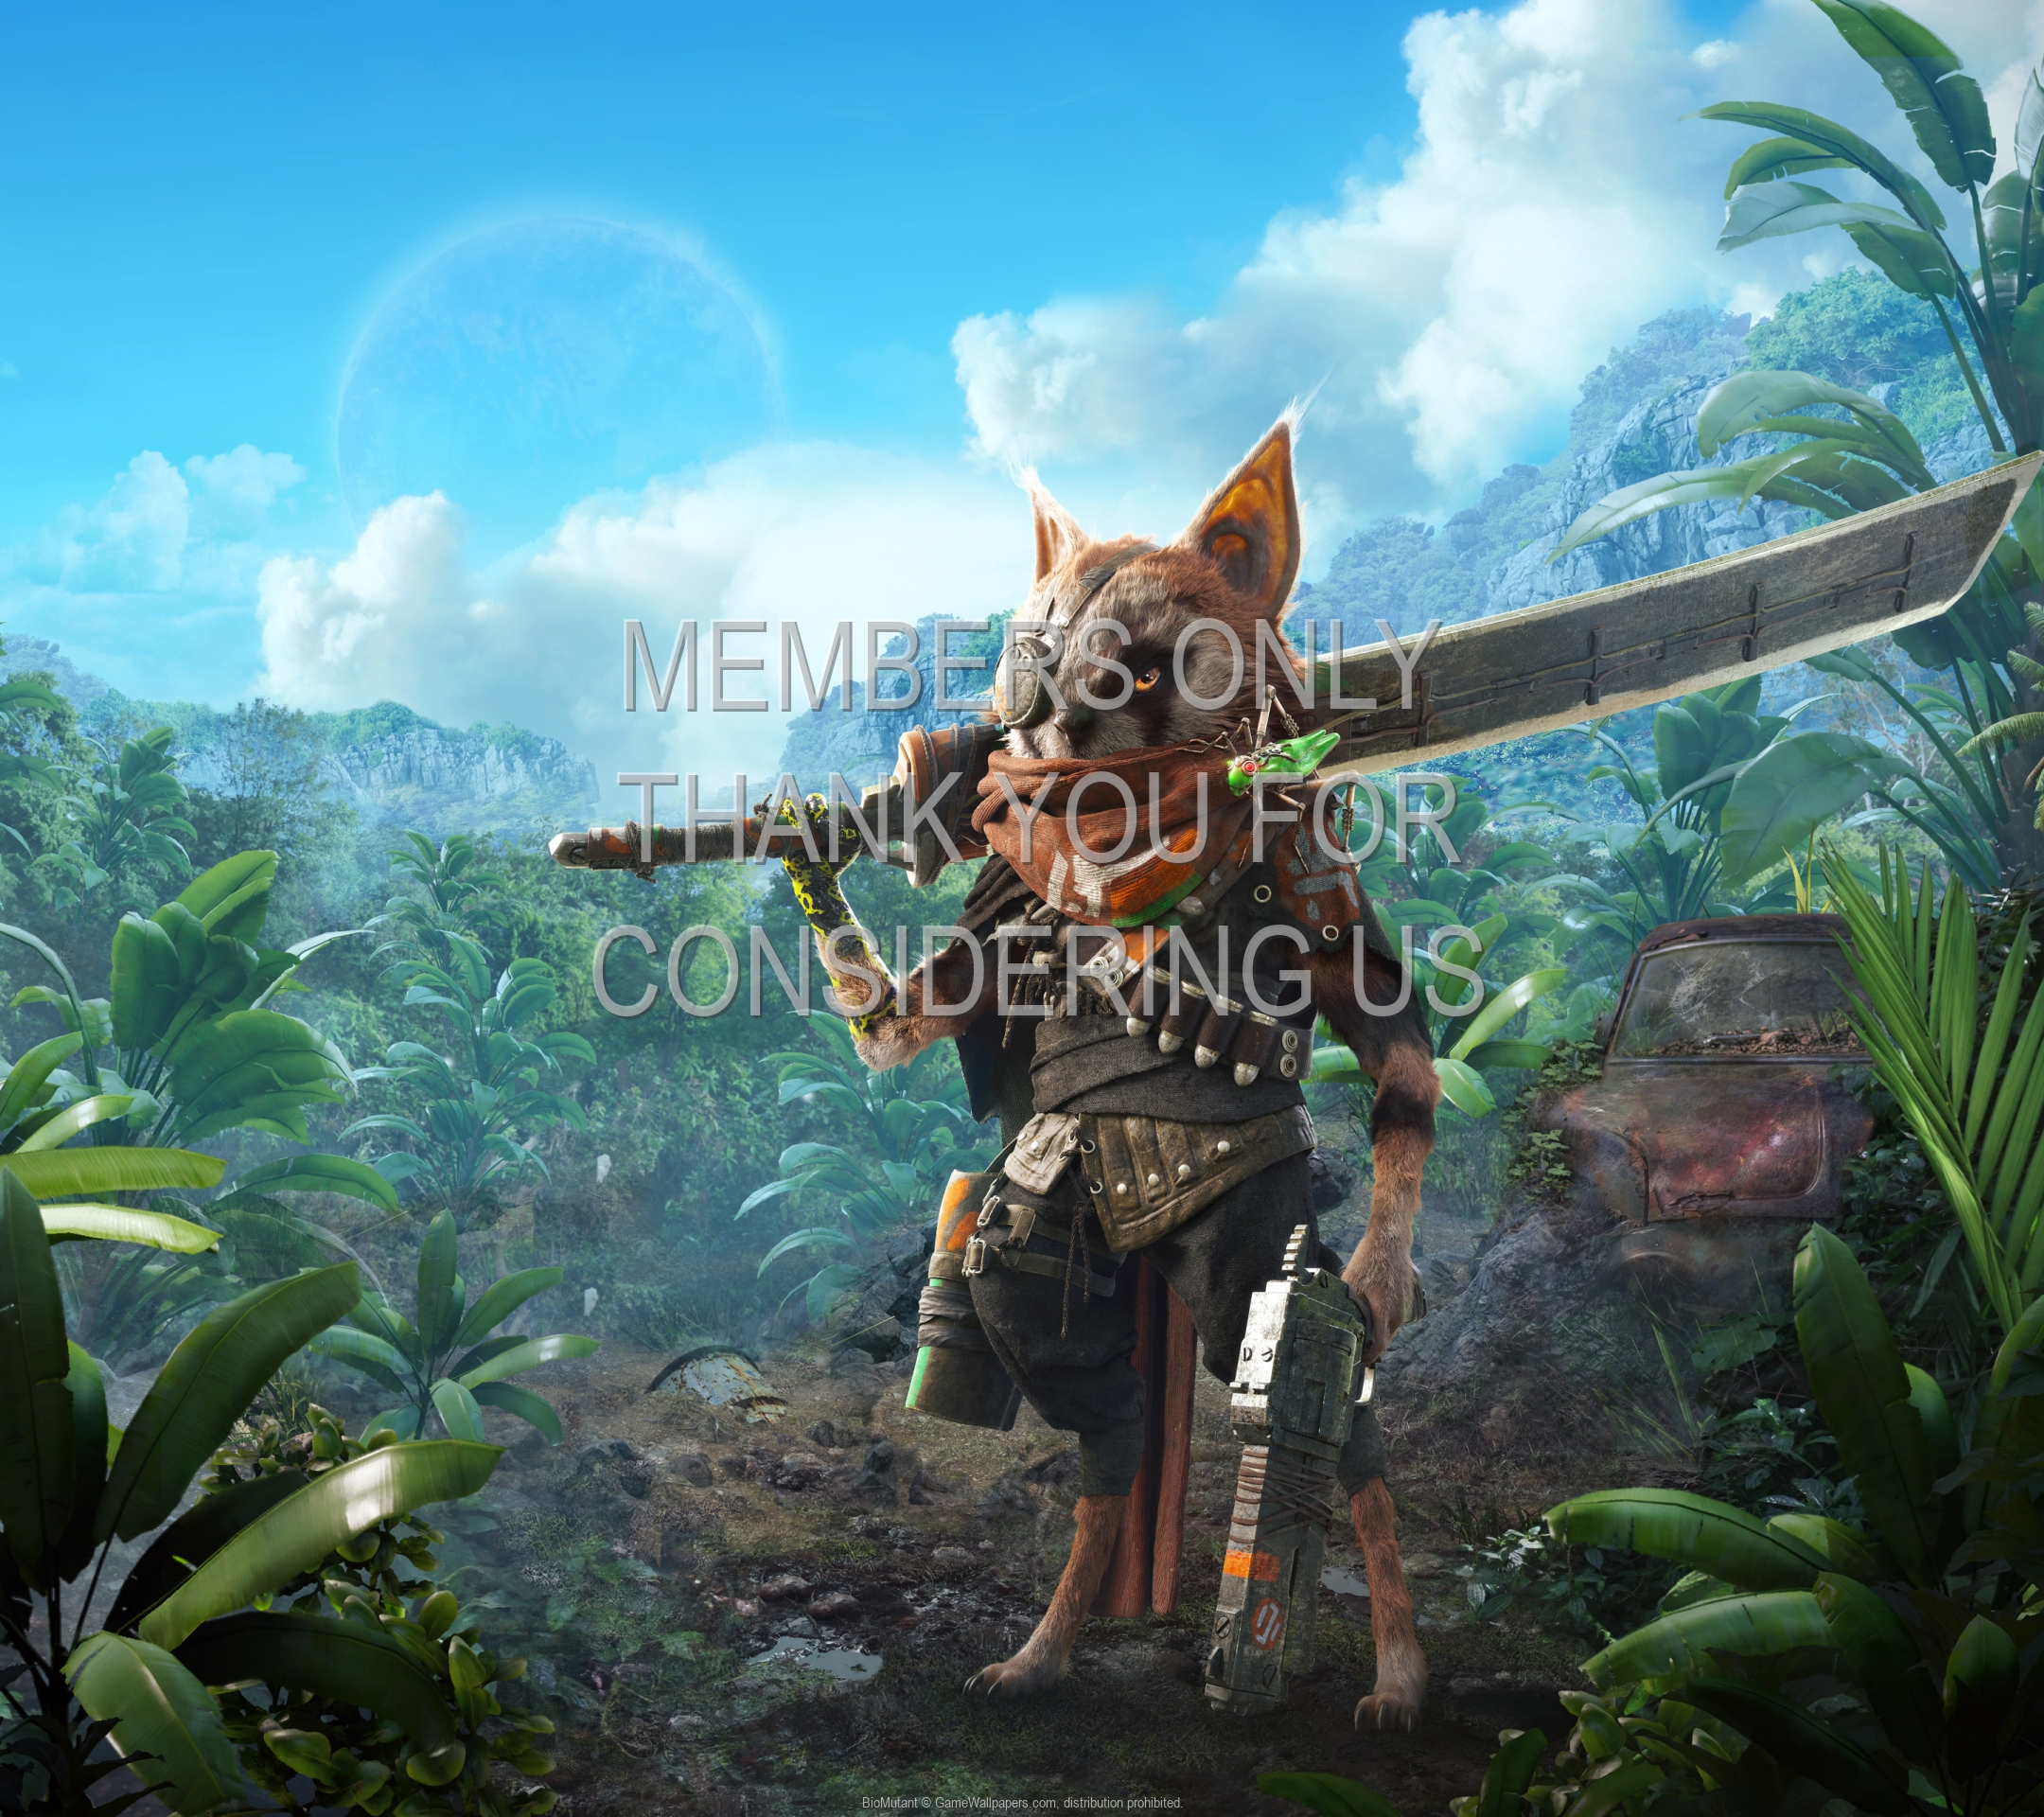 BioMutant 1920x1080 Mobile wallpaper or background 01